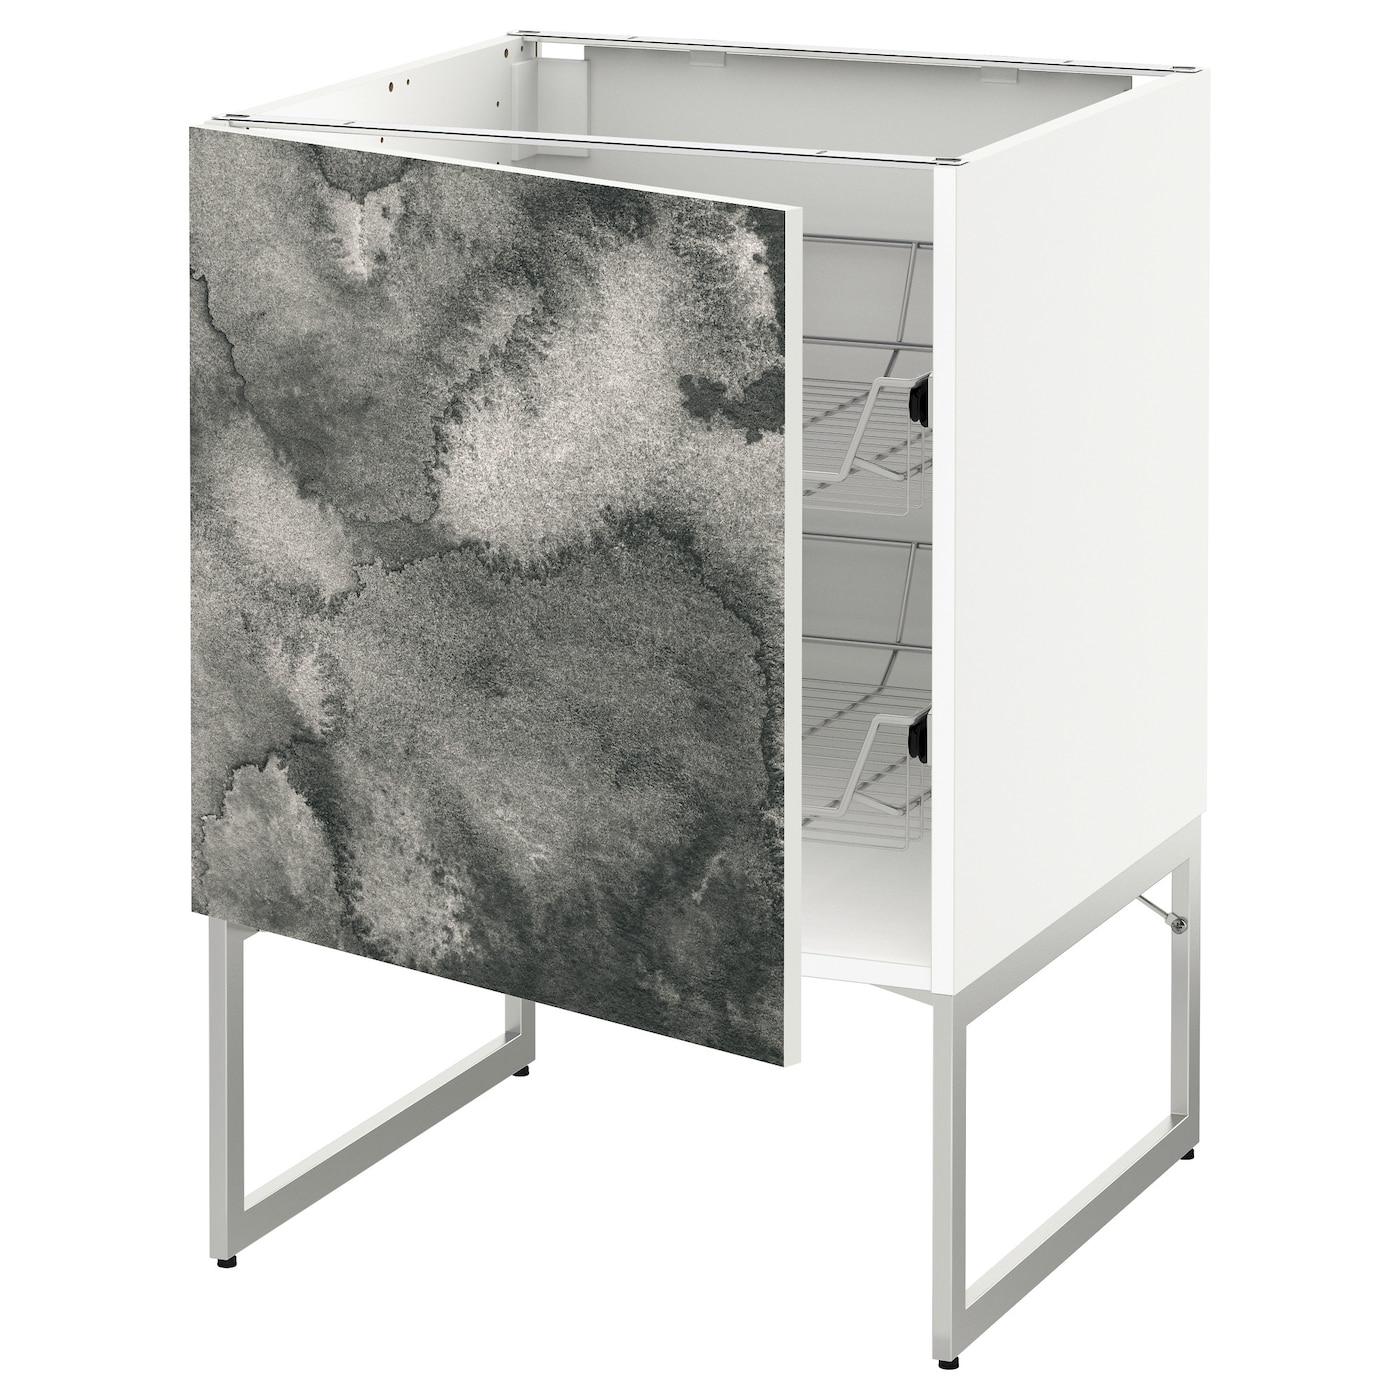 IKEA METOD base cabinet with wire baskets Smooth-running wire baskets with pull-out stop.